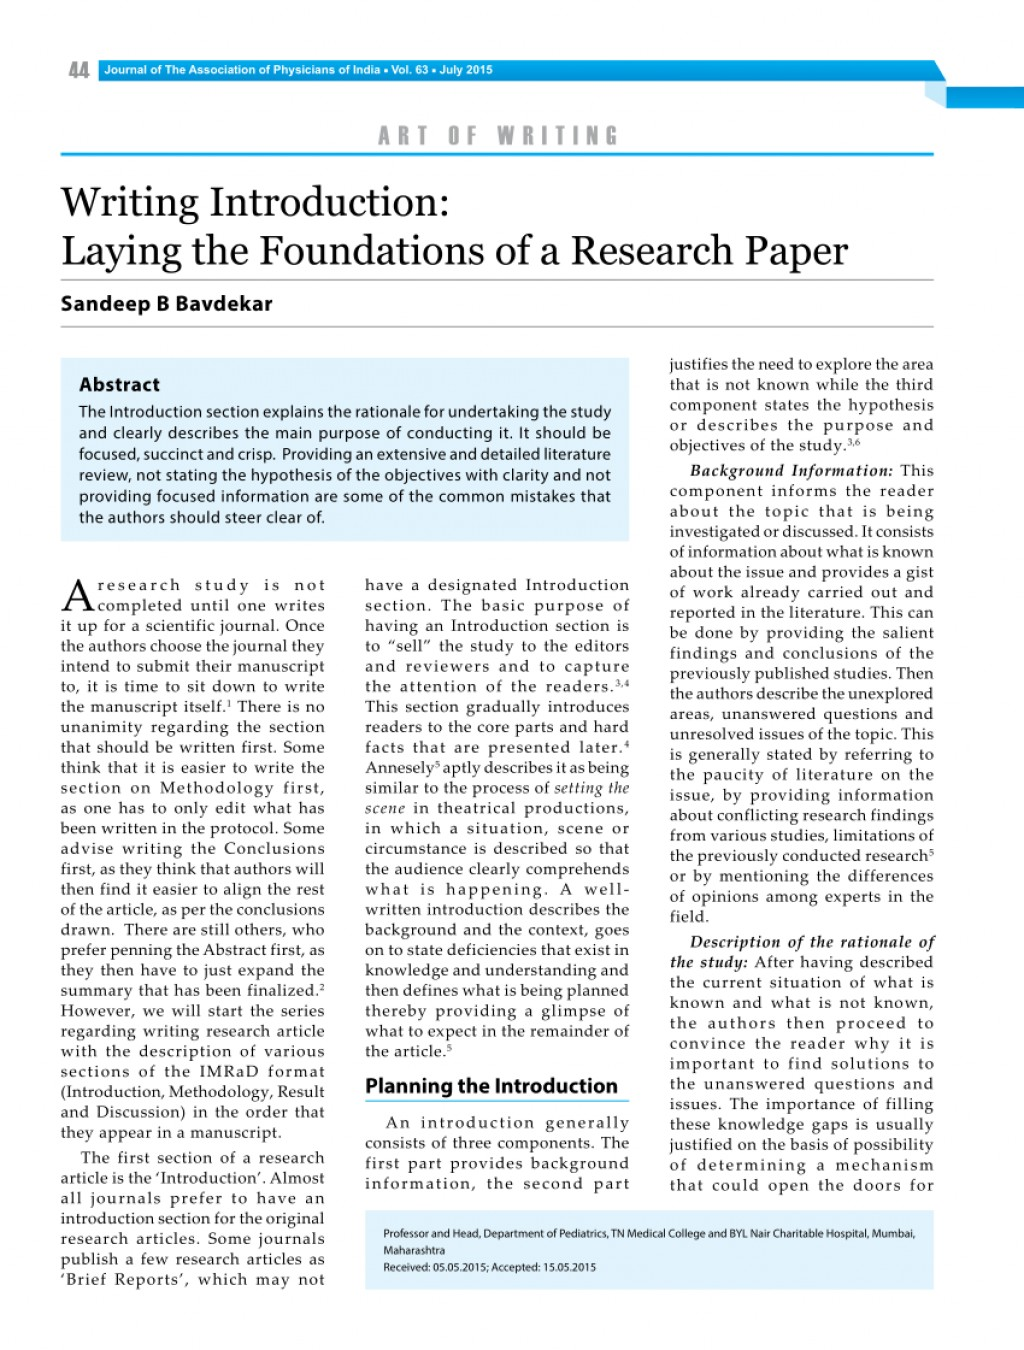 006 Sample Of Research Paper Introduction Stupendous A Writing Guidelines In Ppt How To Write Apa Large